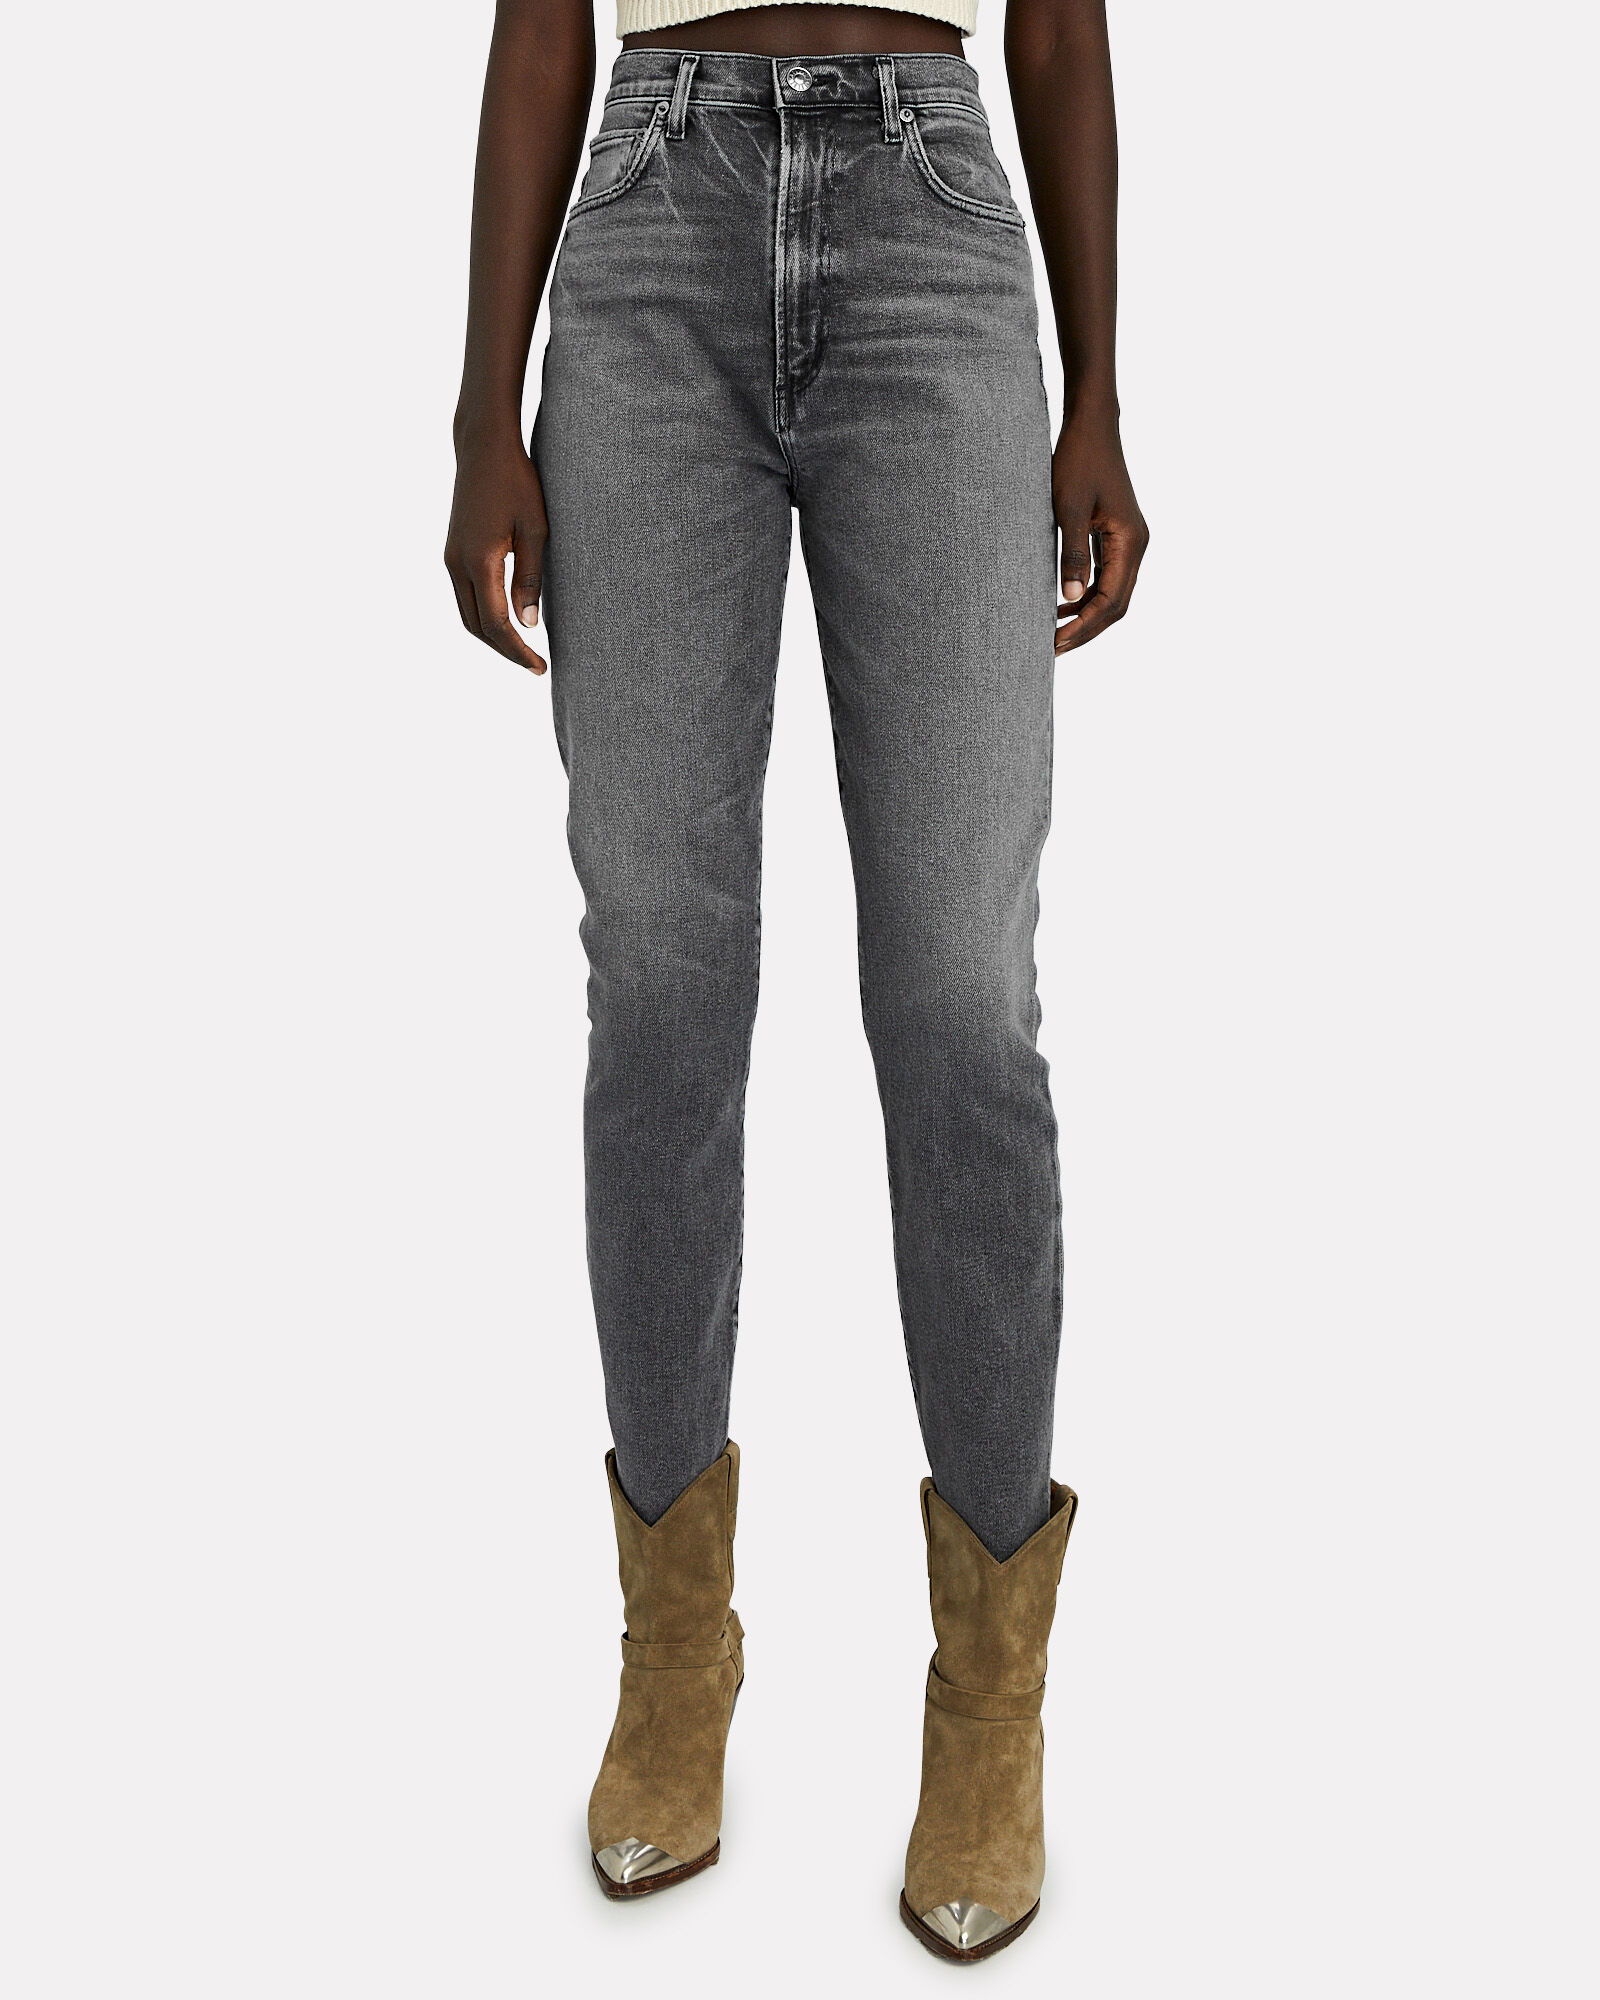 Pinch Waist Skinny Jeans, INTERLUDE, hi-res